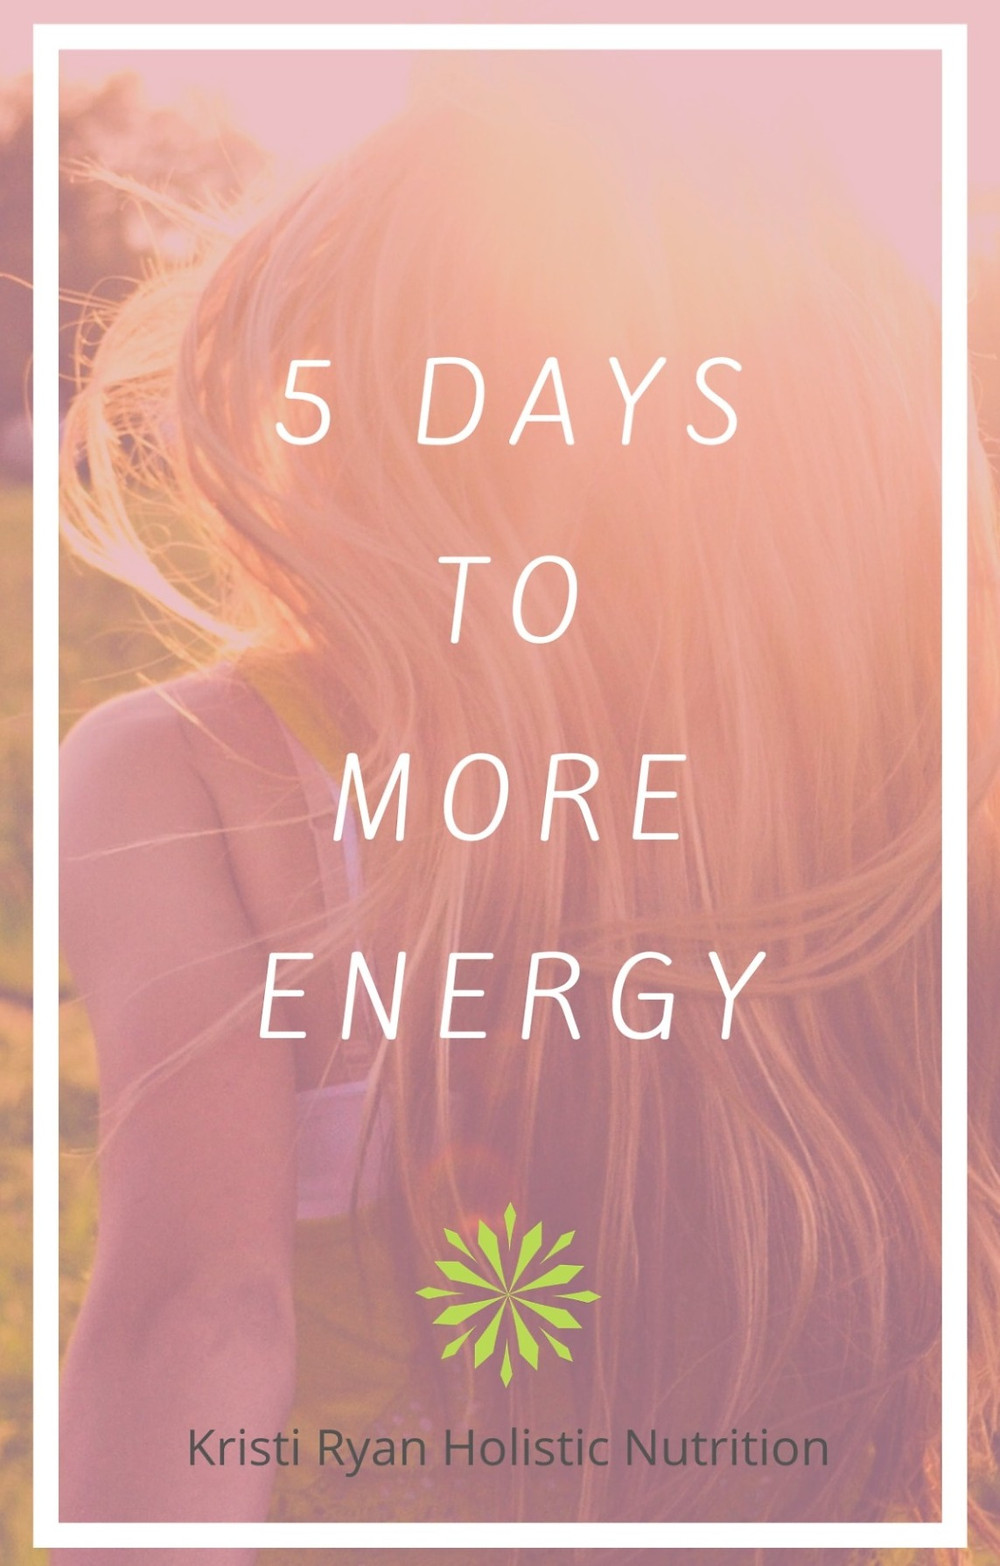 Caption on picture reads 5 Days to more energy. Green logo for Kristi Ryan Holistic Nutrition